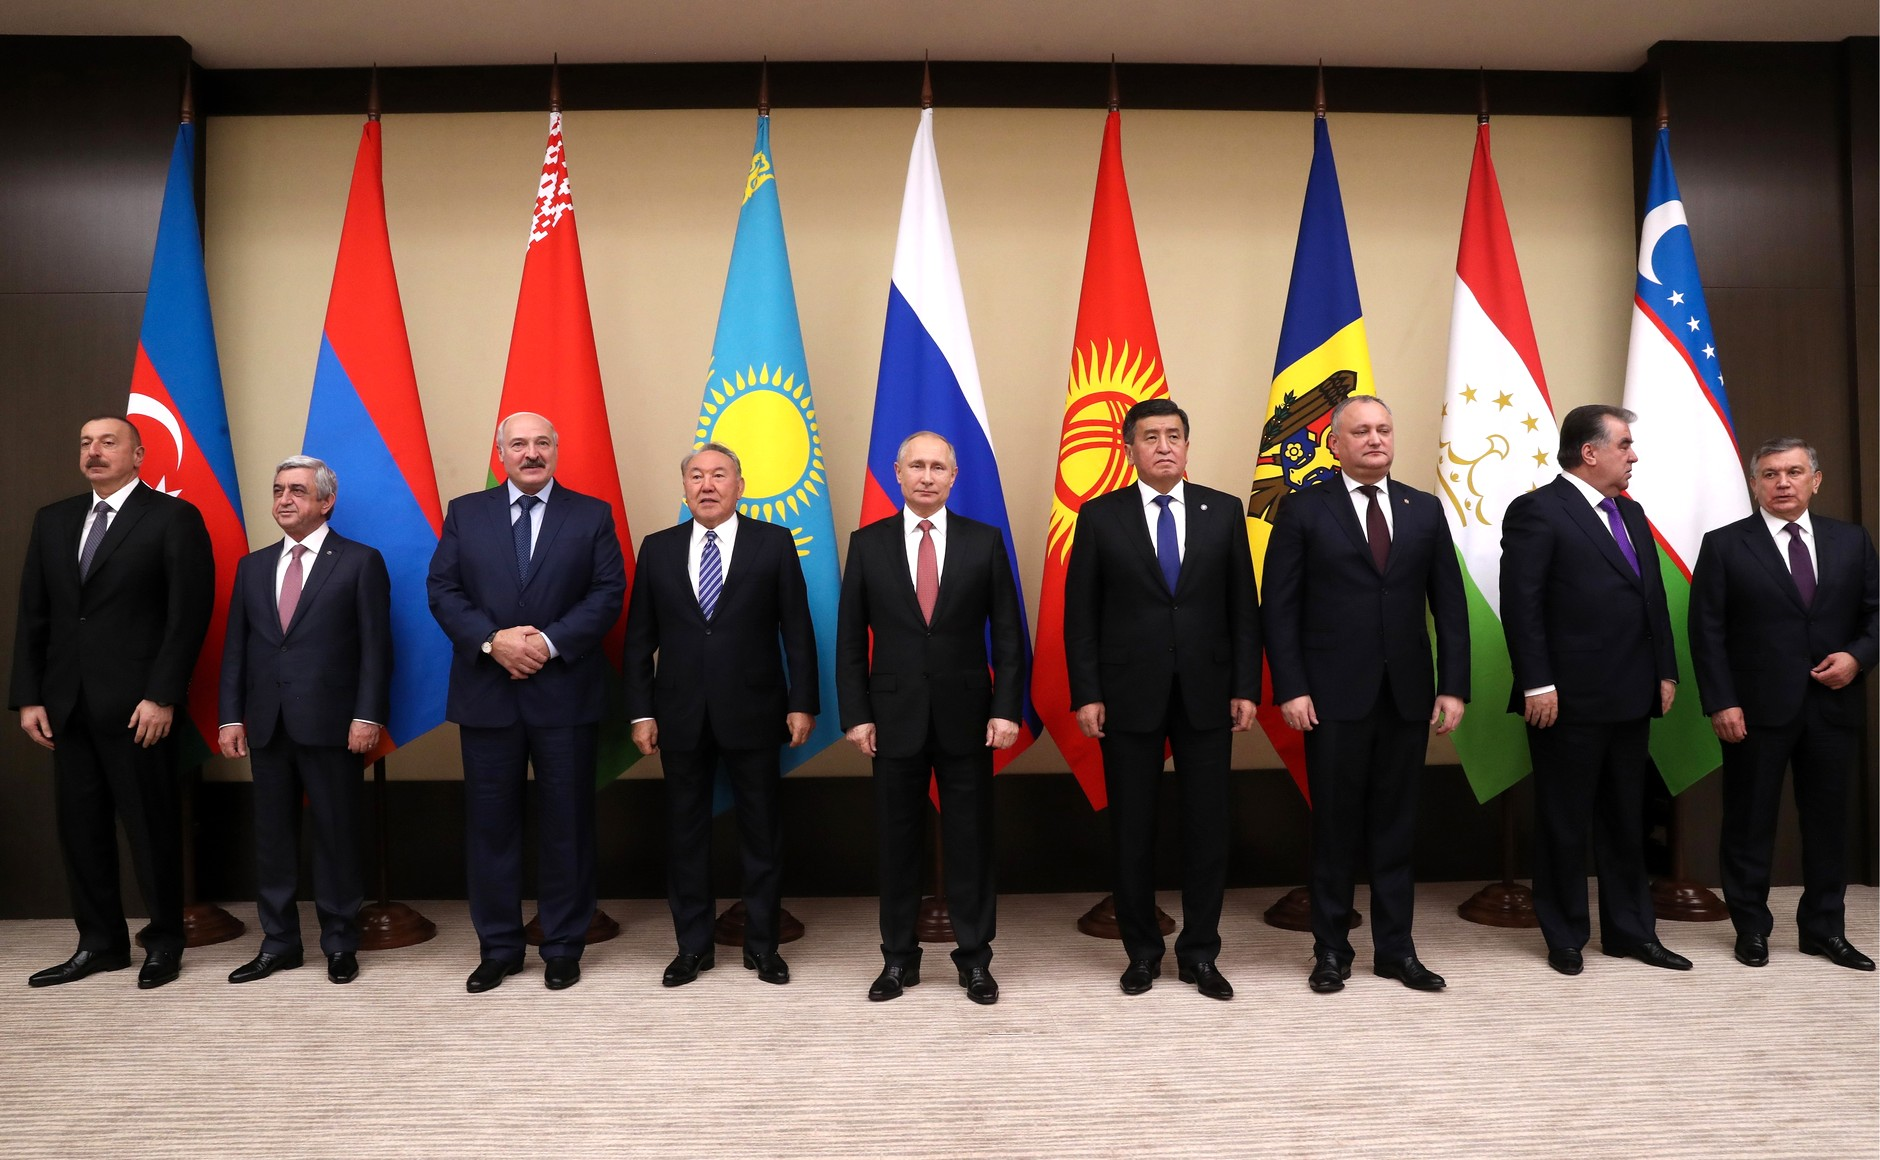 Military 'agreements' in Central Asia highlight Kremlin's malign influence